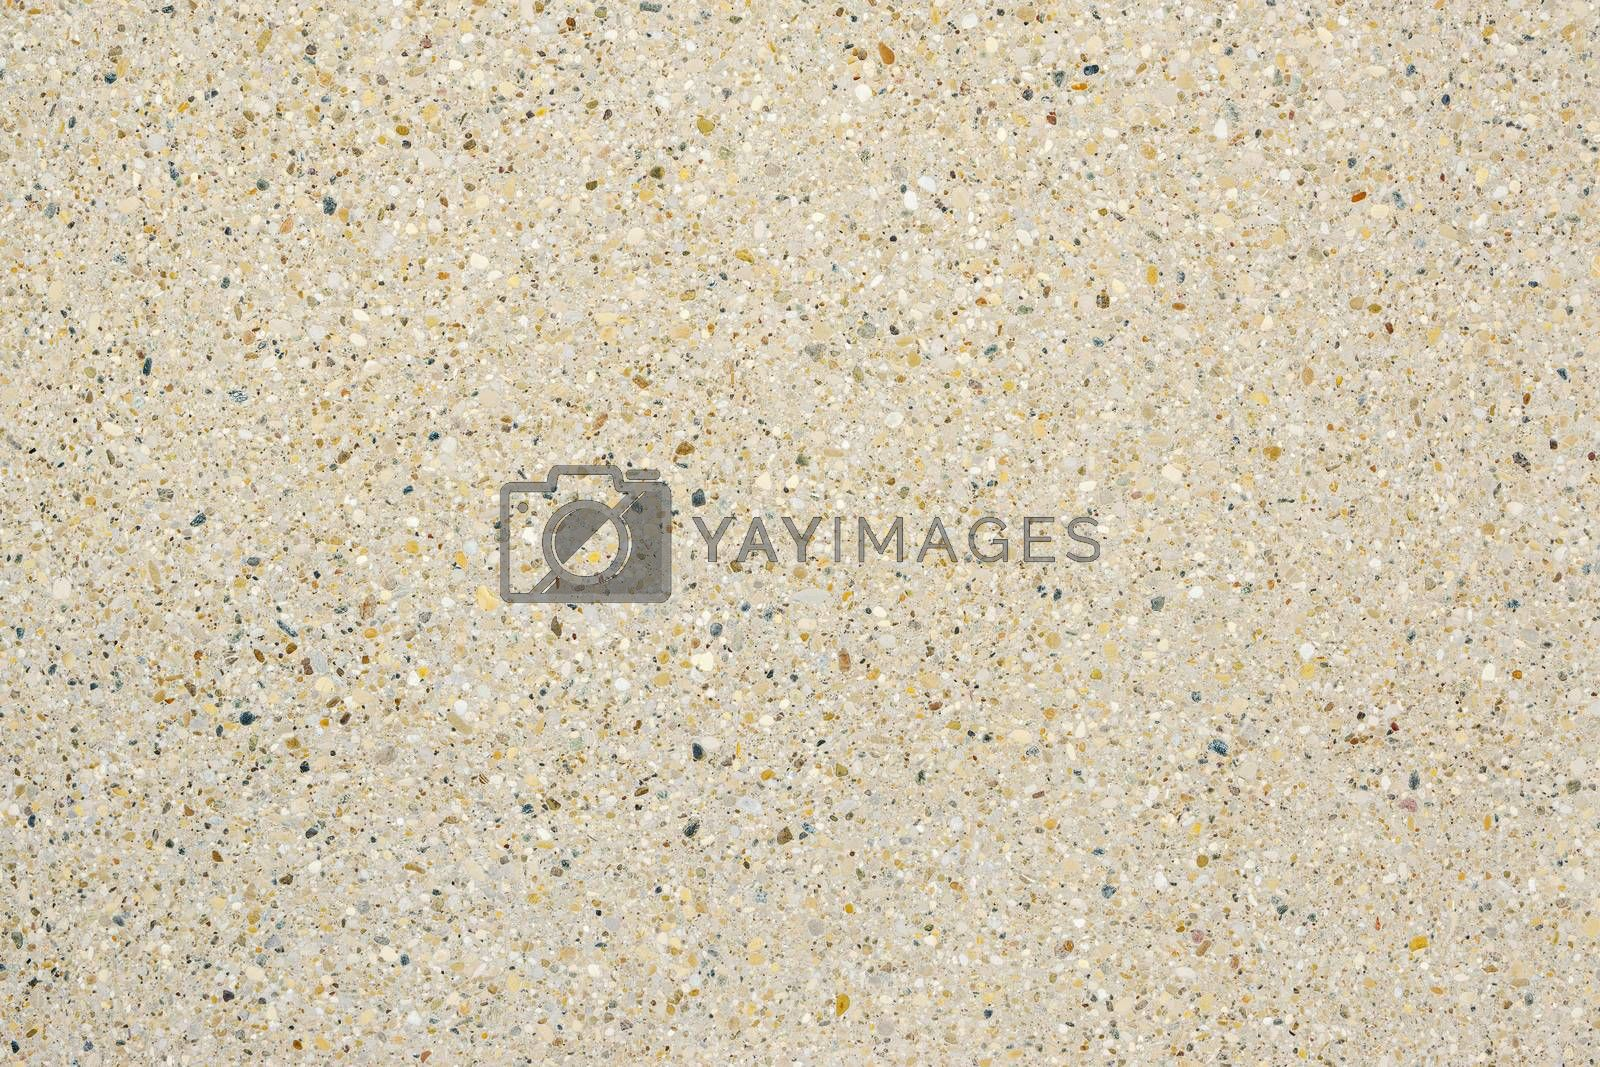 An image of an aggregate concrete wall texture background